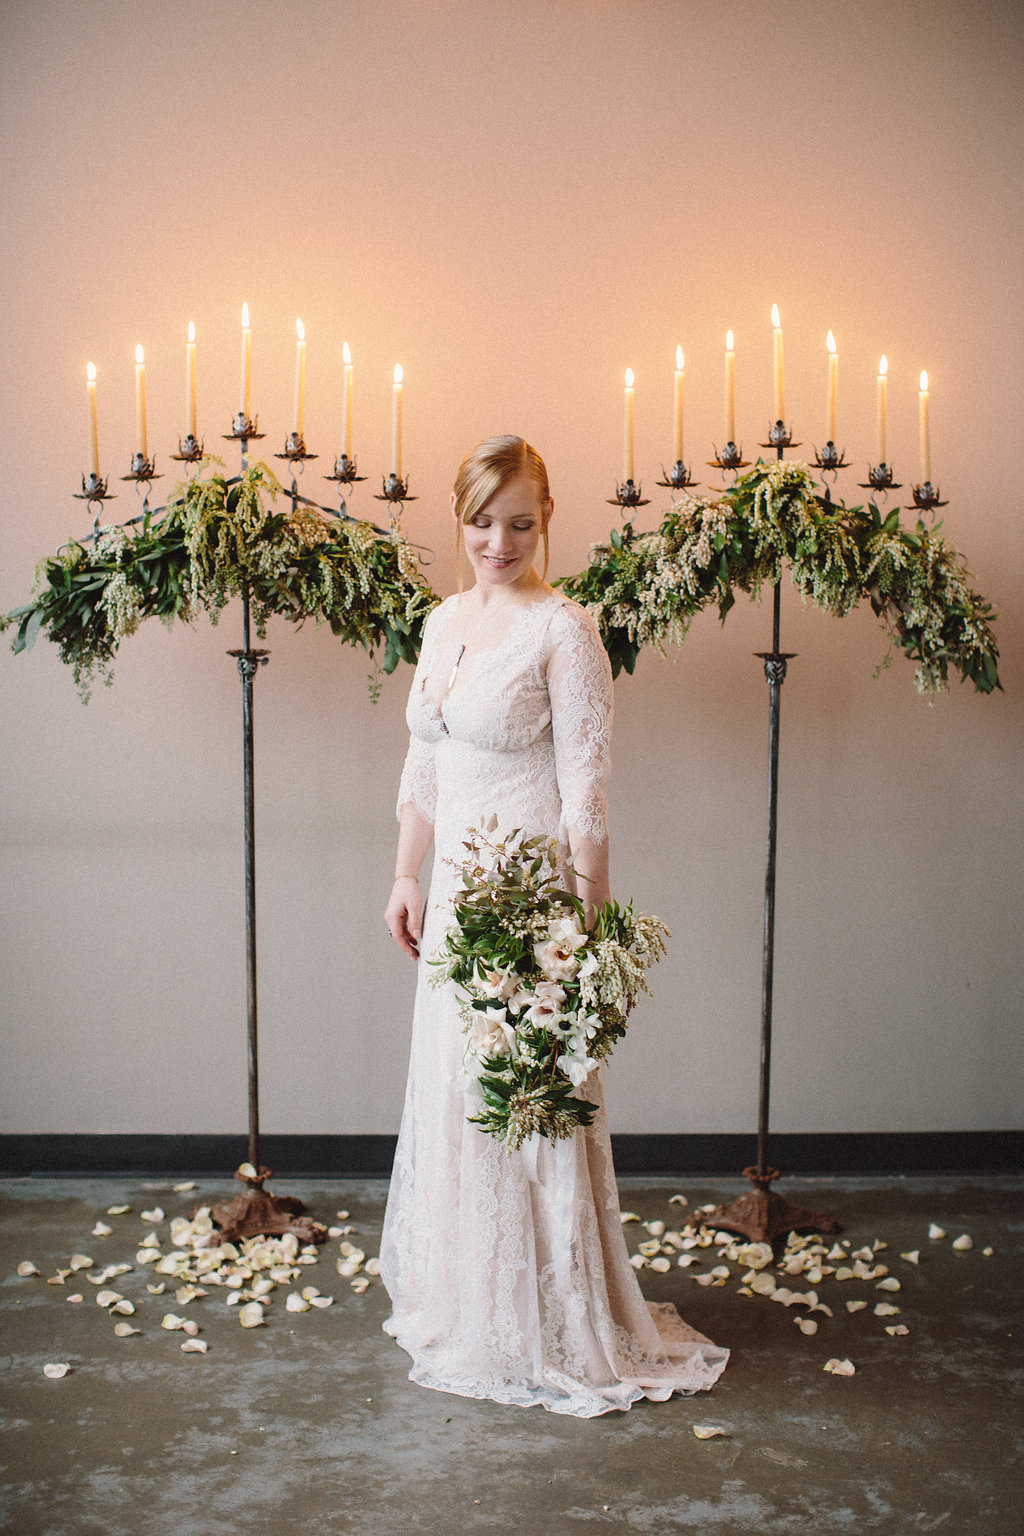 Ceremony flower arrangements by Nectar & Root | Wedding floral design services in Burlington, Vermont (VT) | Candelabras with blush garden roses, pieris japonica, tapered candles